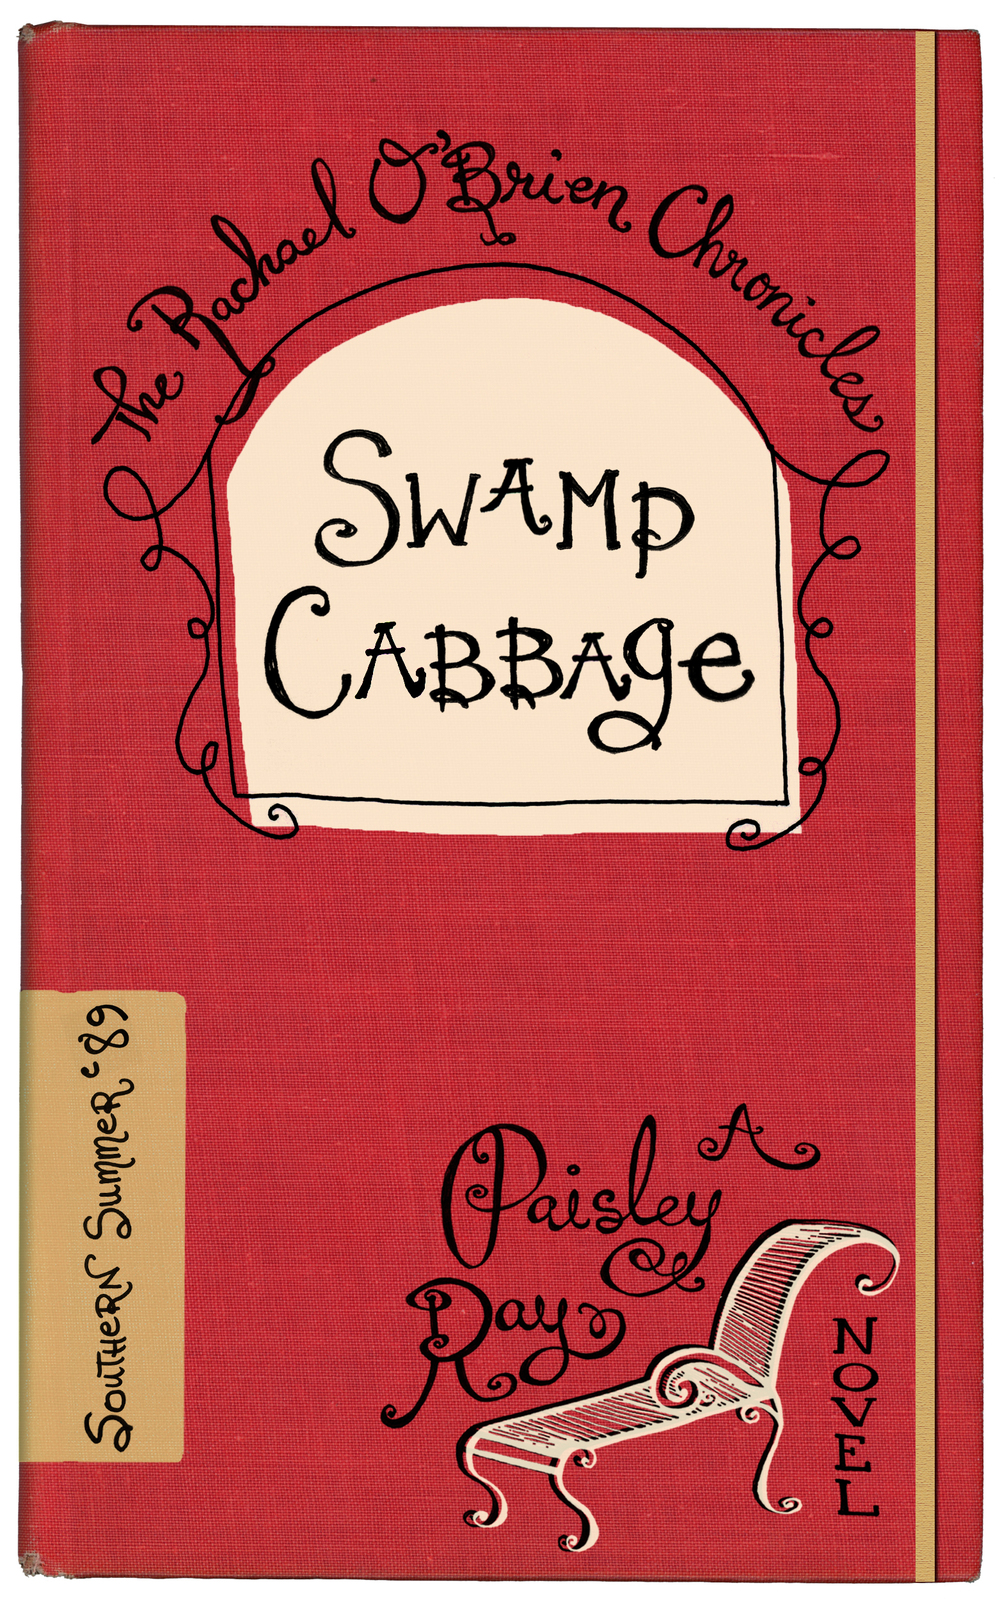 Swamp Cabbage mystery book